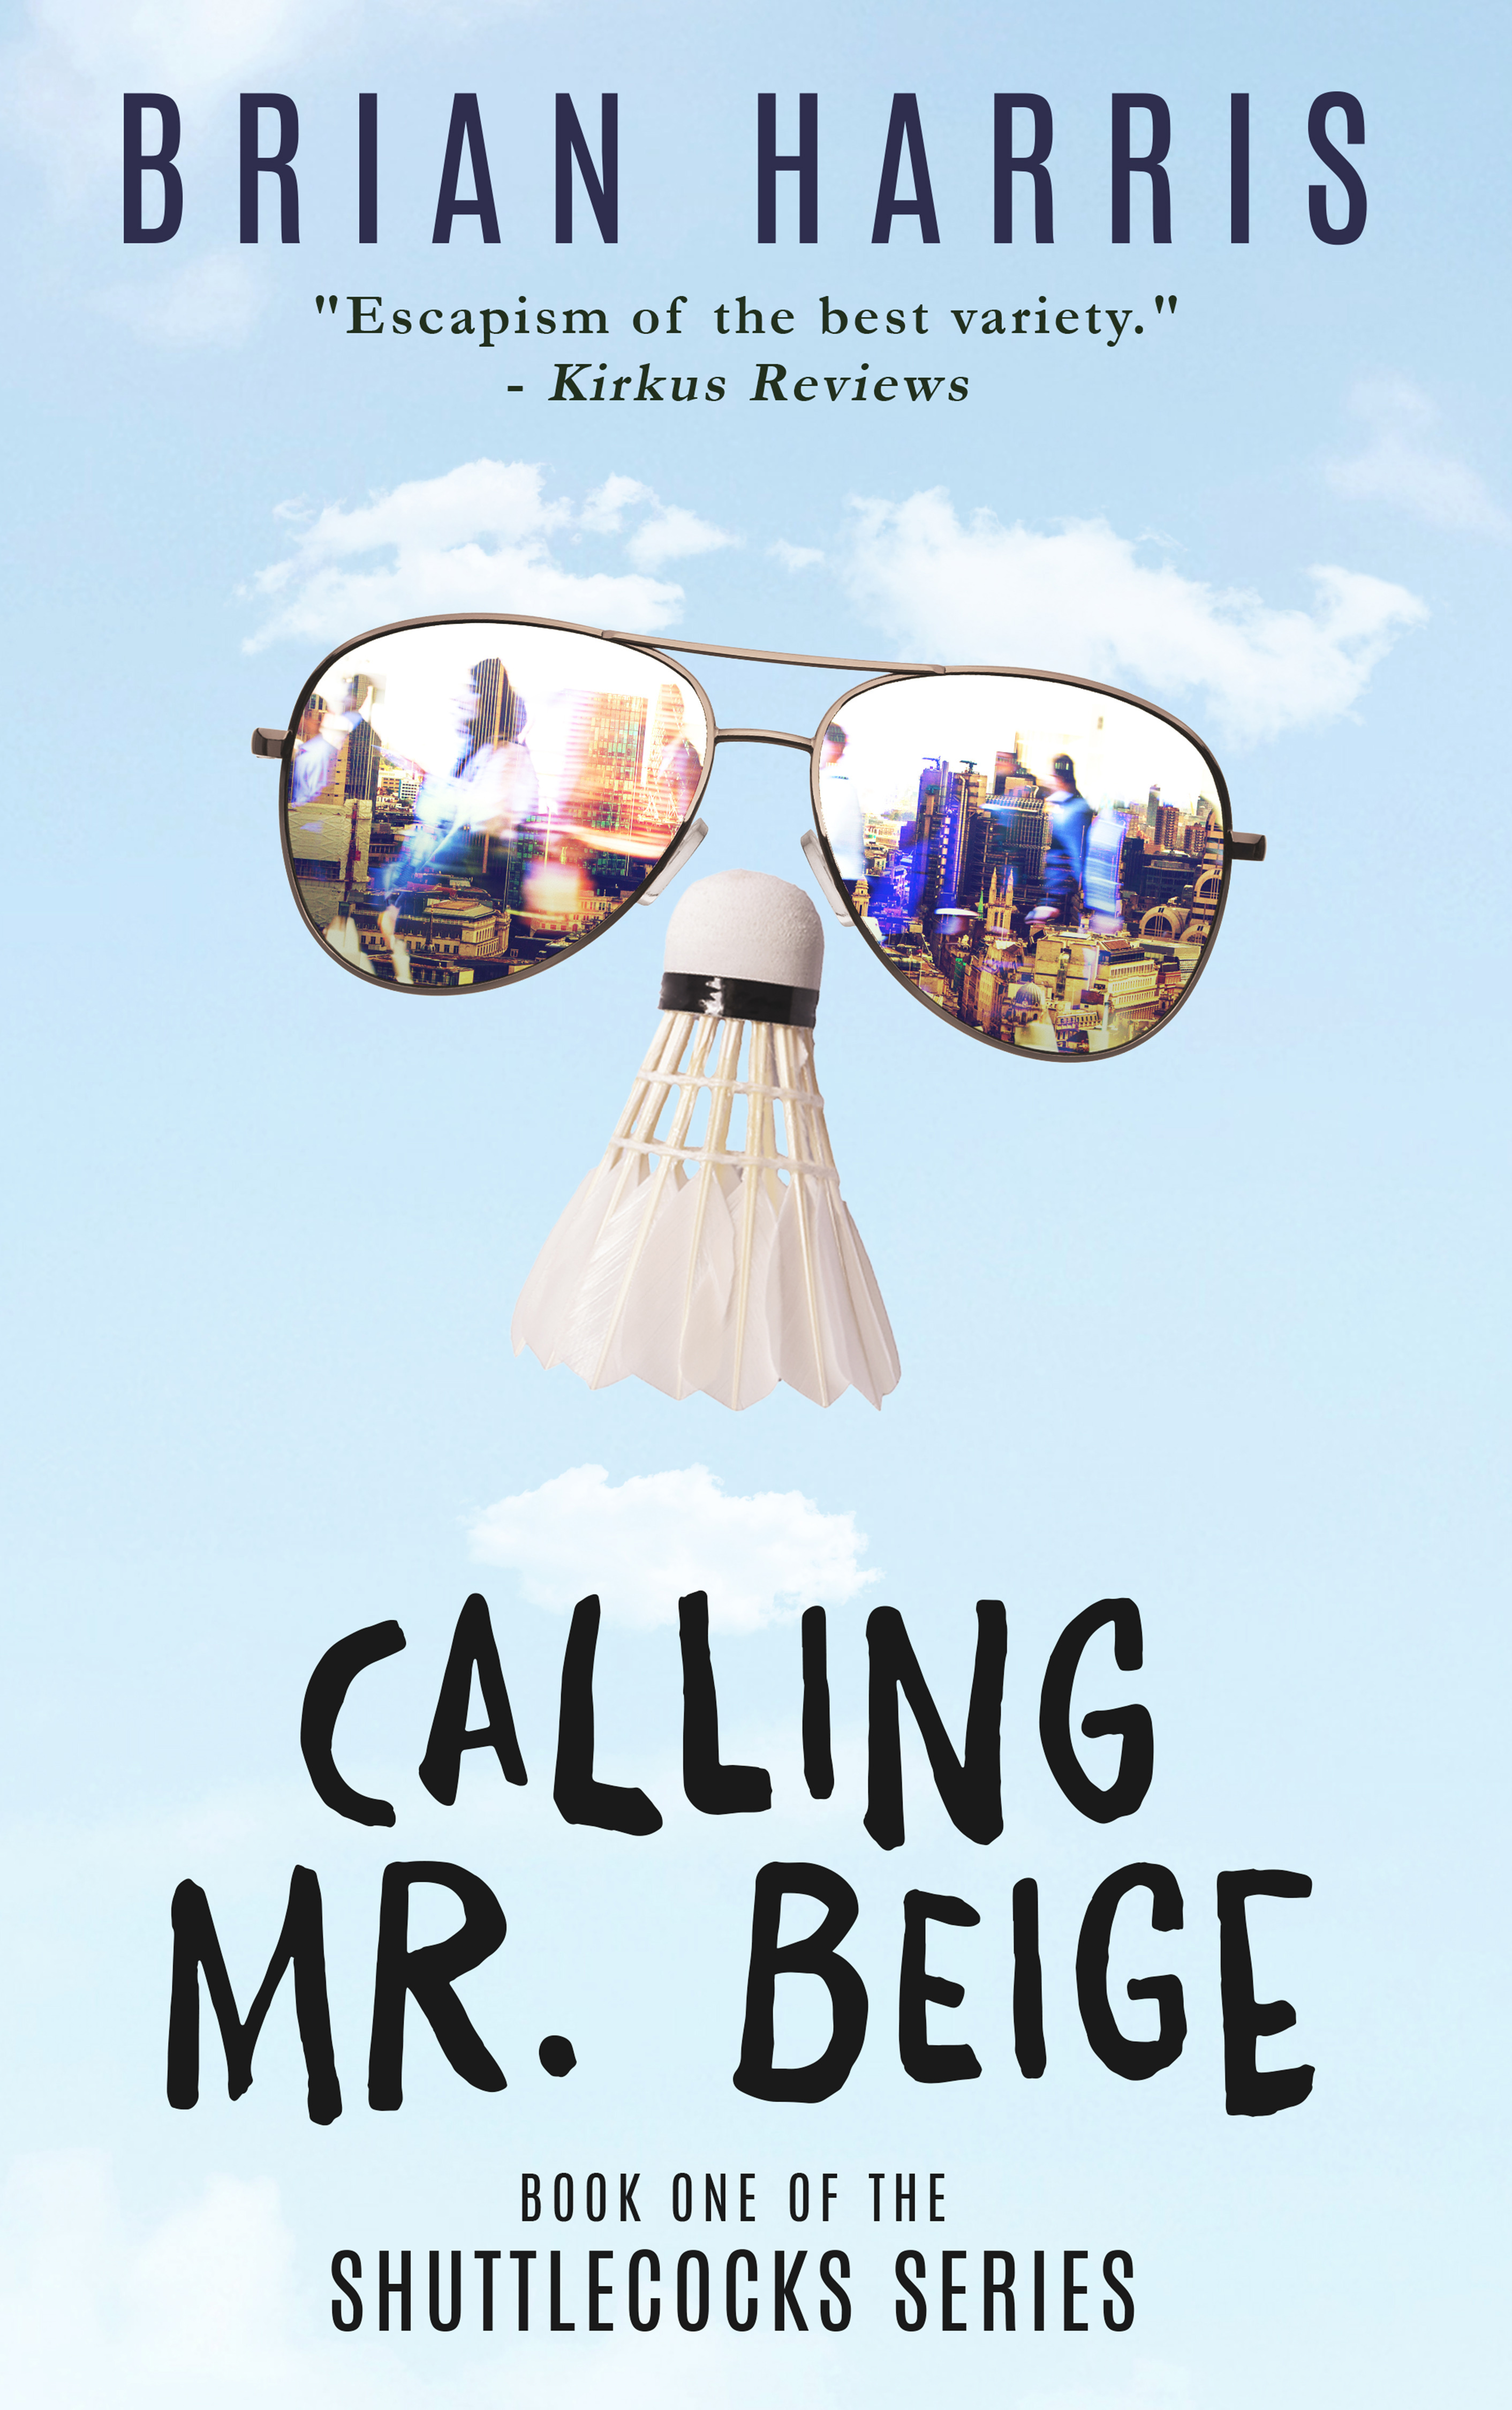 Calling Mr. Beige: Book One of the Shuttlecocks Series